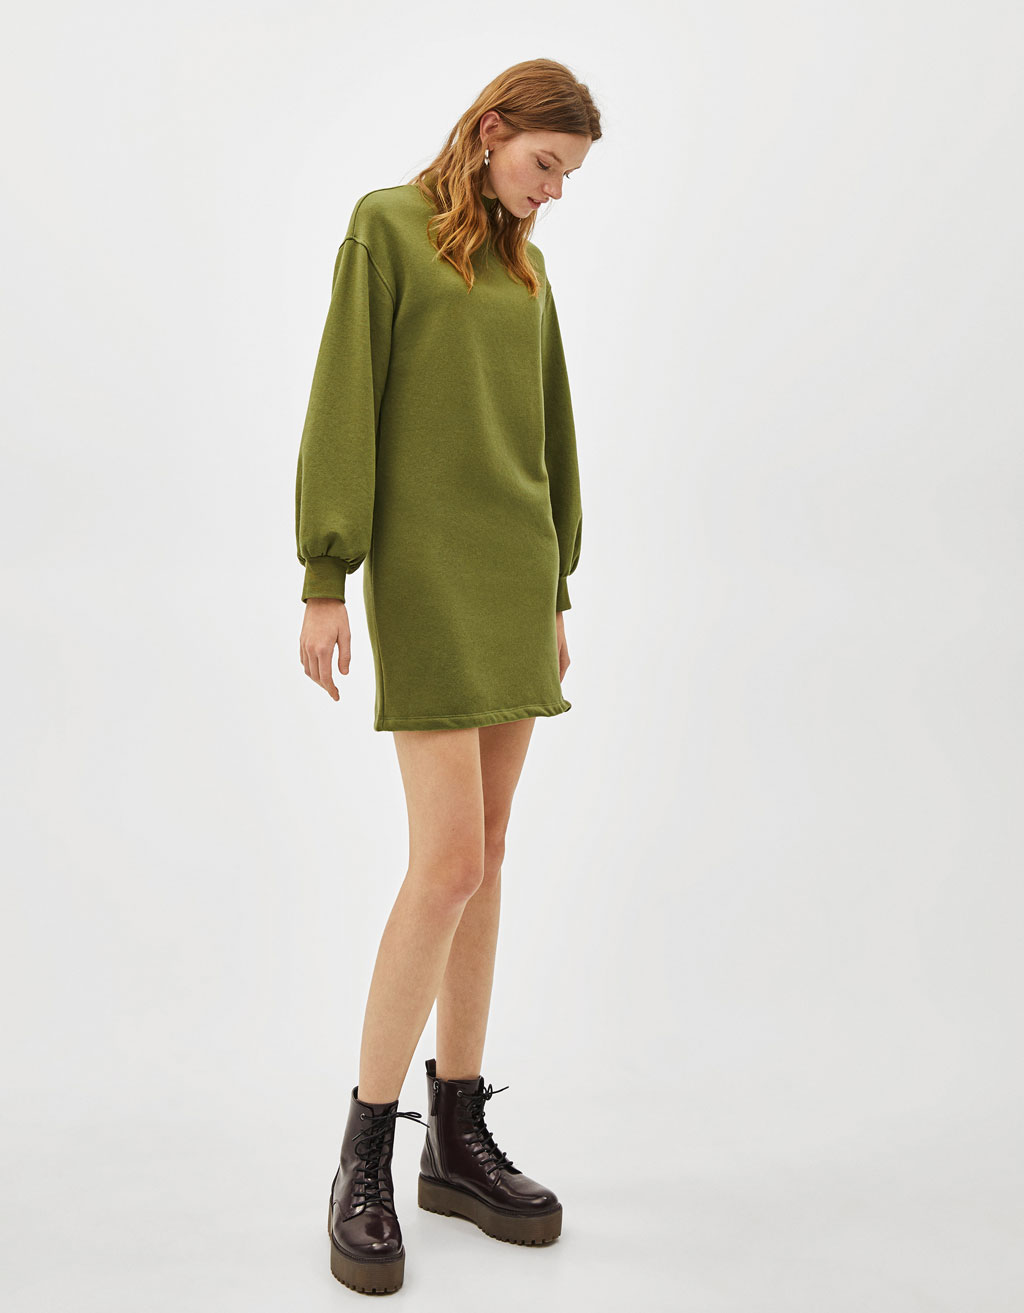 Sweatshirt Style Dress by Bershka